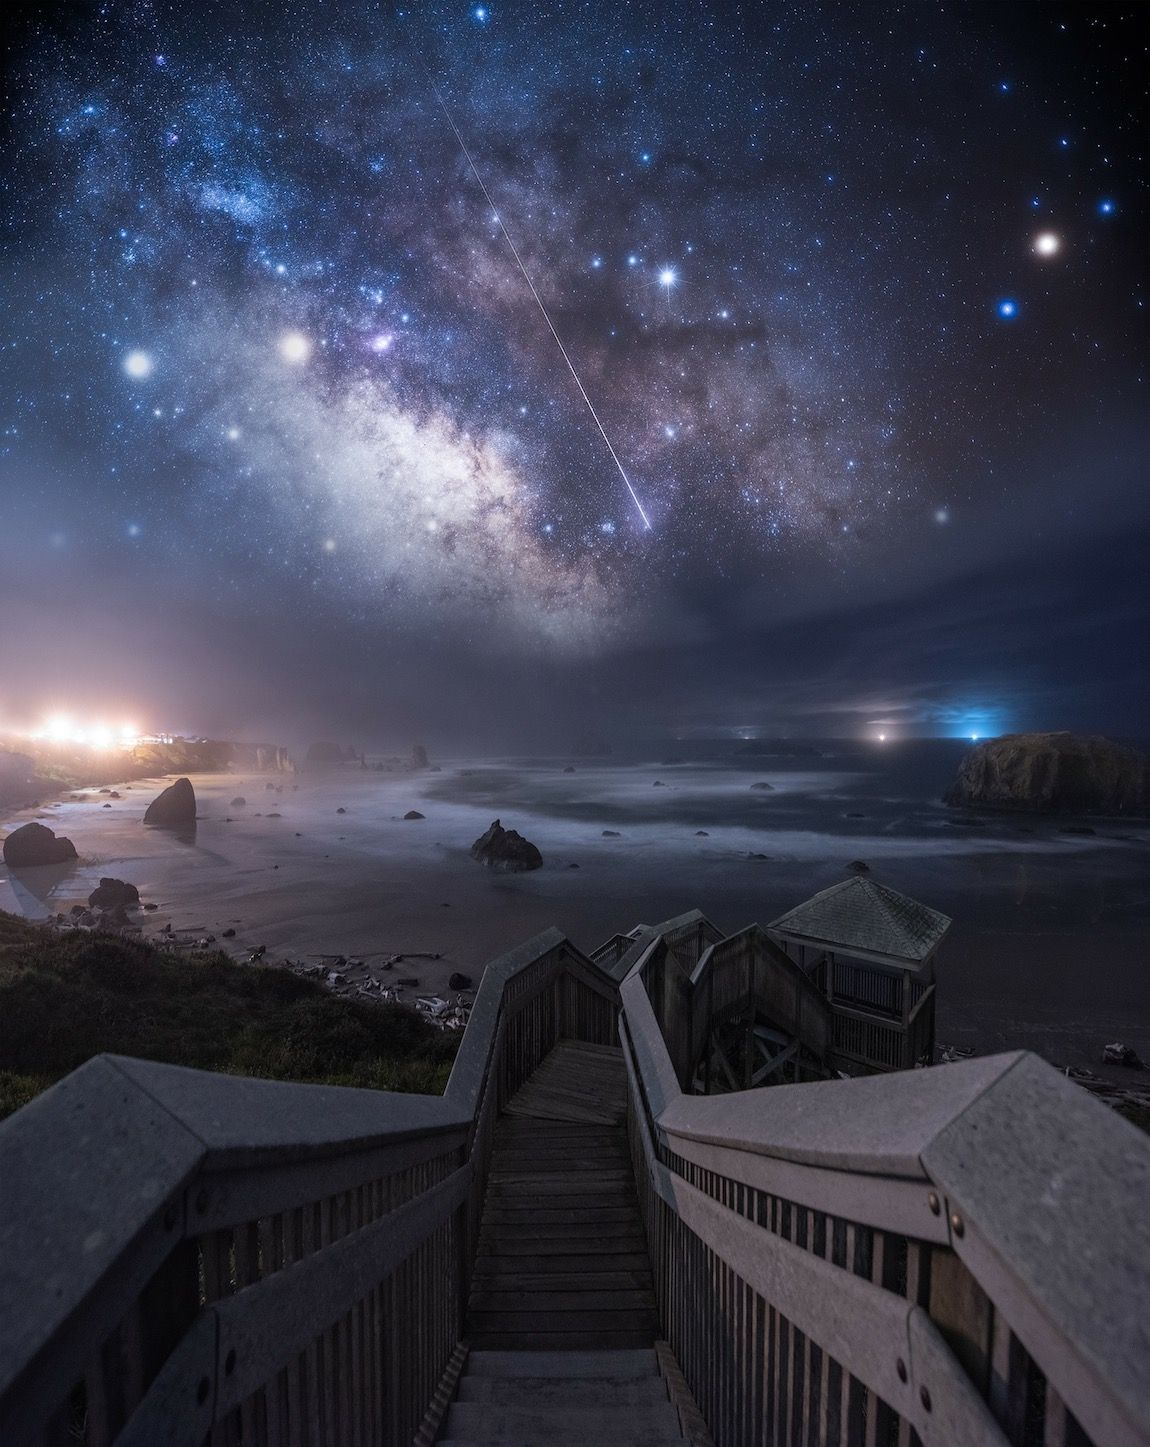 Dreamy Landscapes At Night Inspired By Space Stars And Video Games Dreamy Landscapes Night Landscape Photography Night Landscape